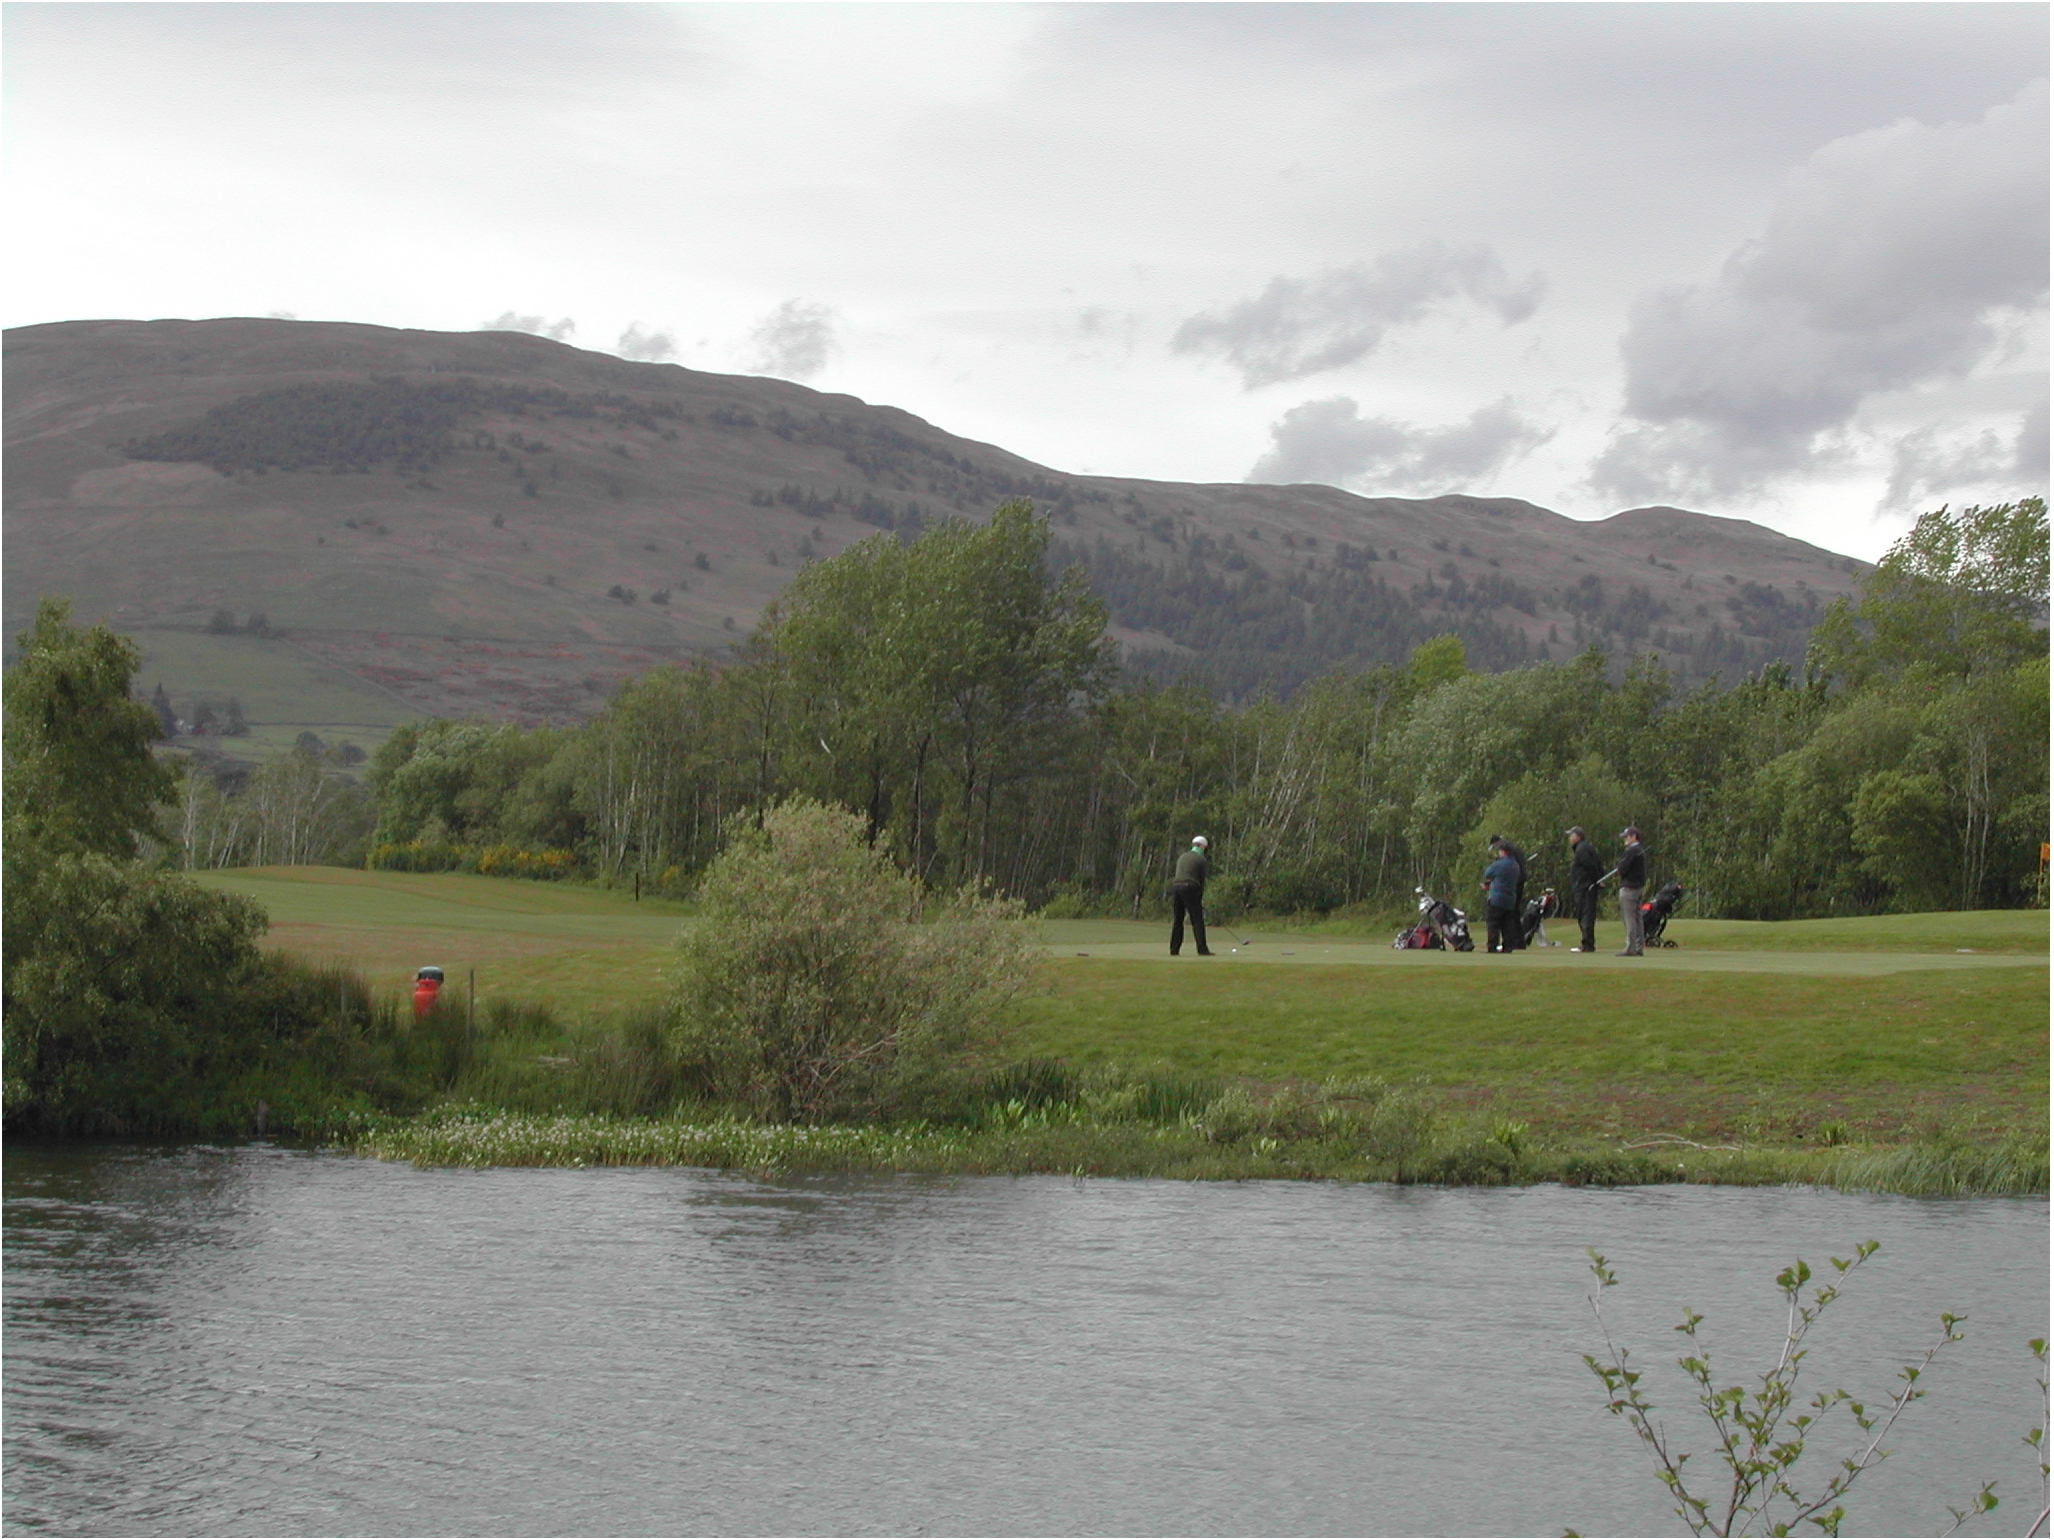 Golf-course protection